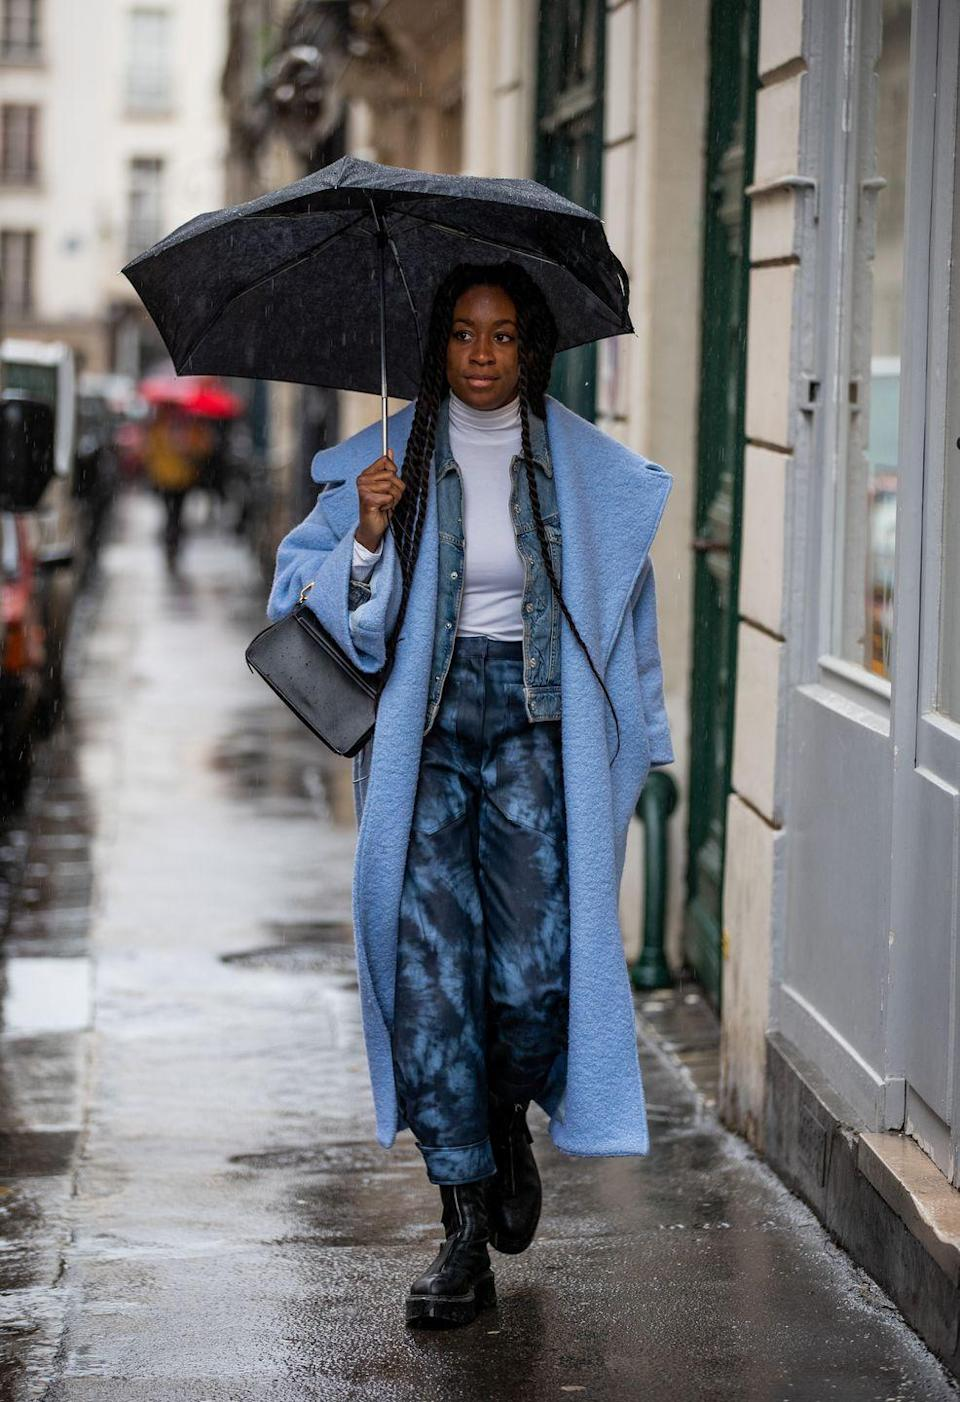 <p>On cold days, we don't always want to wear our full-on parka. For a more fashionable look, choose one of your chicest coats and add a denim jacket underneath. This layered look will add a special touch to your outfit.</p>